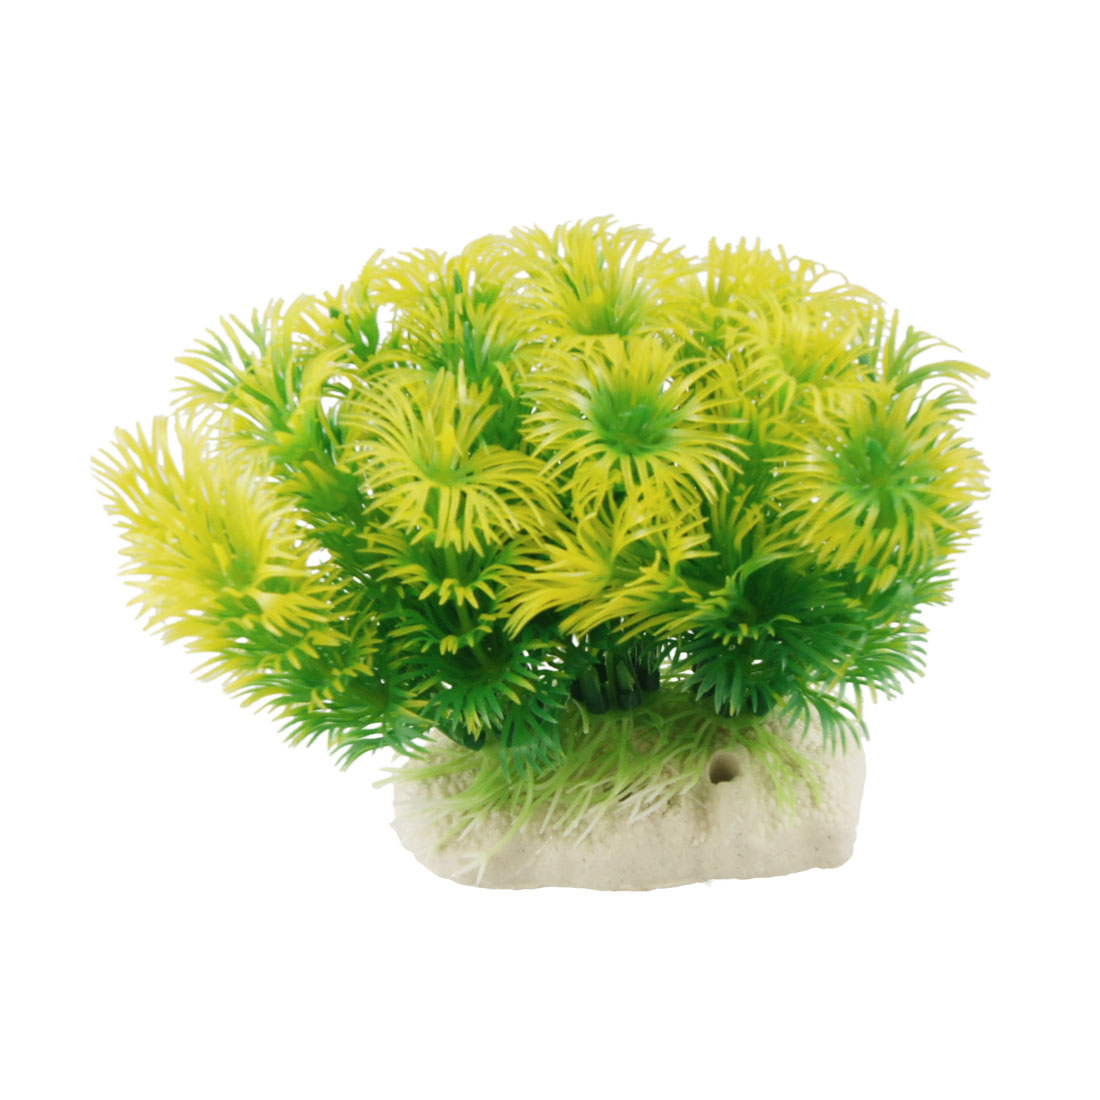 10cm Aquarium Fish Tank Simulated Green Yellow Plastic Plant Ornament